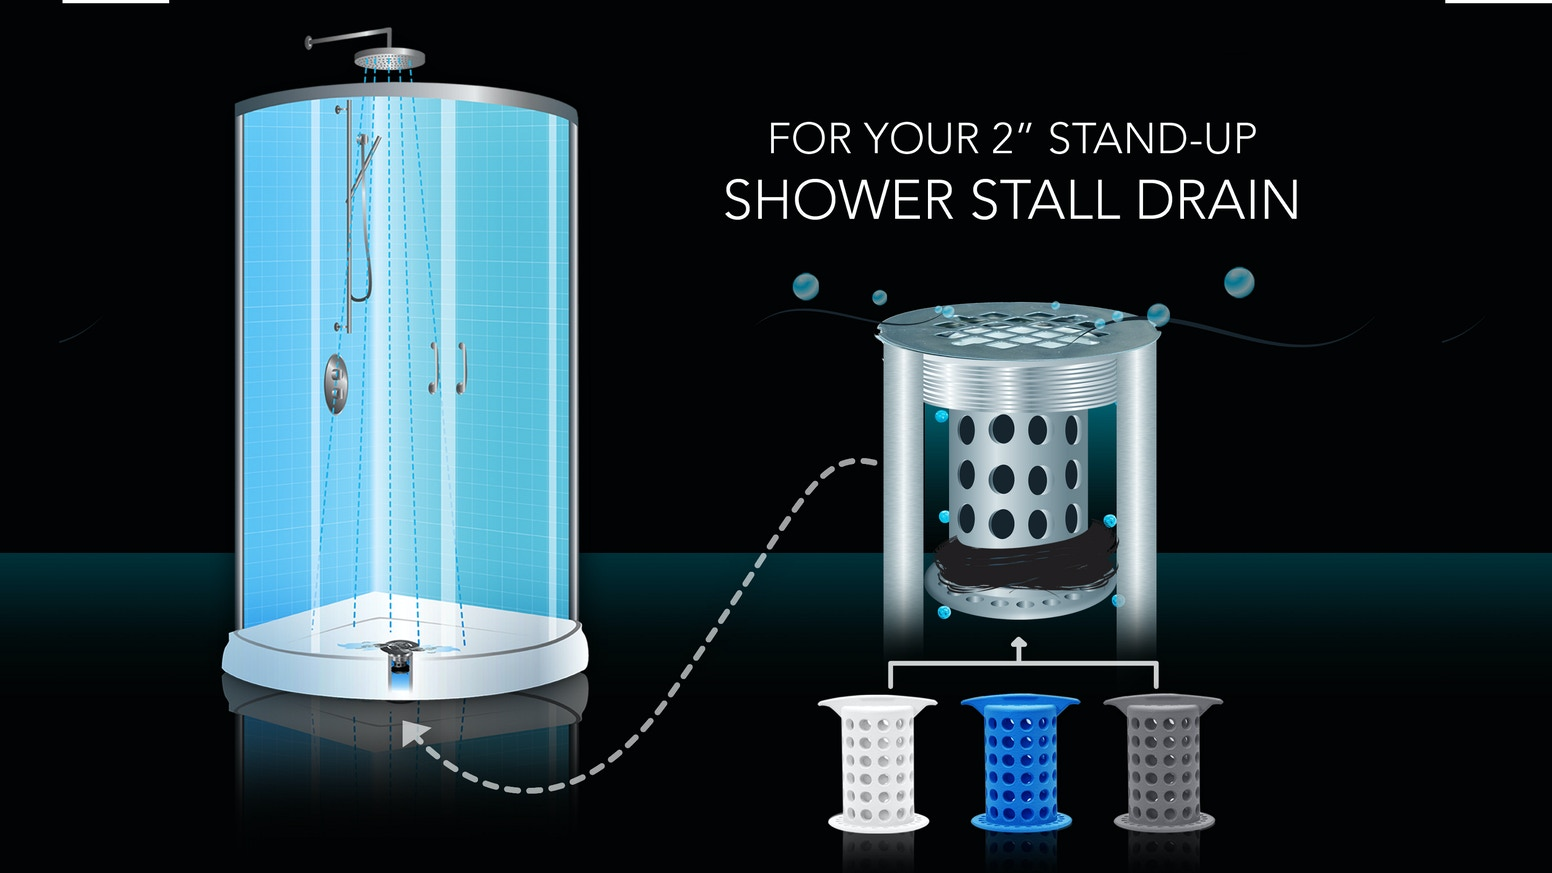 After two successful Kickstarter projects, we are back with our third, long-awaited product called ShowerShroom™ for your Shower Drain